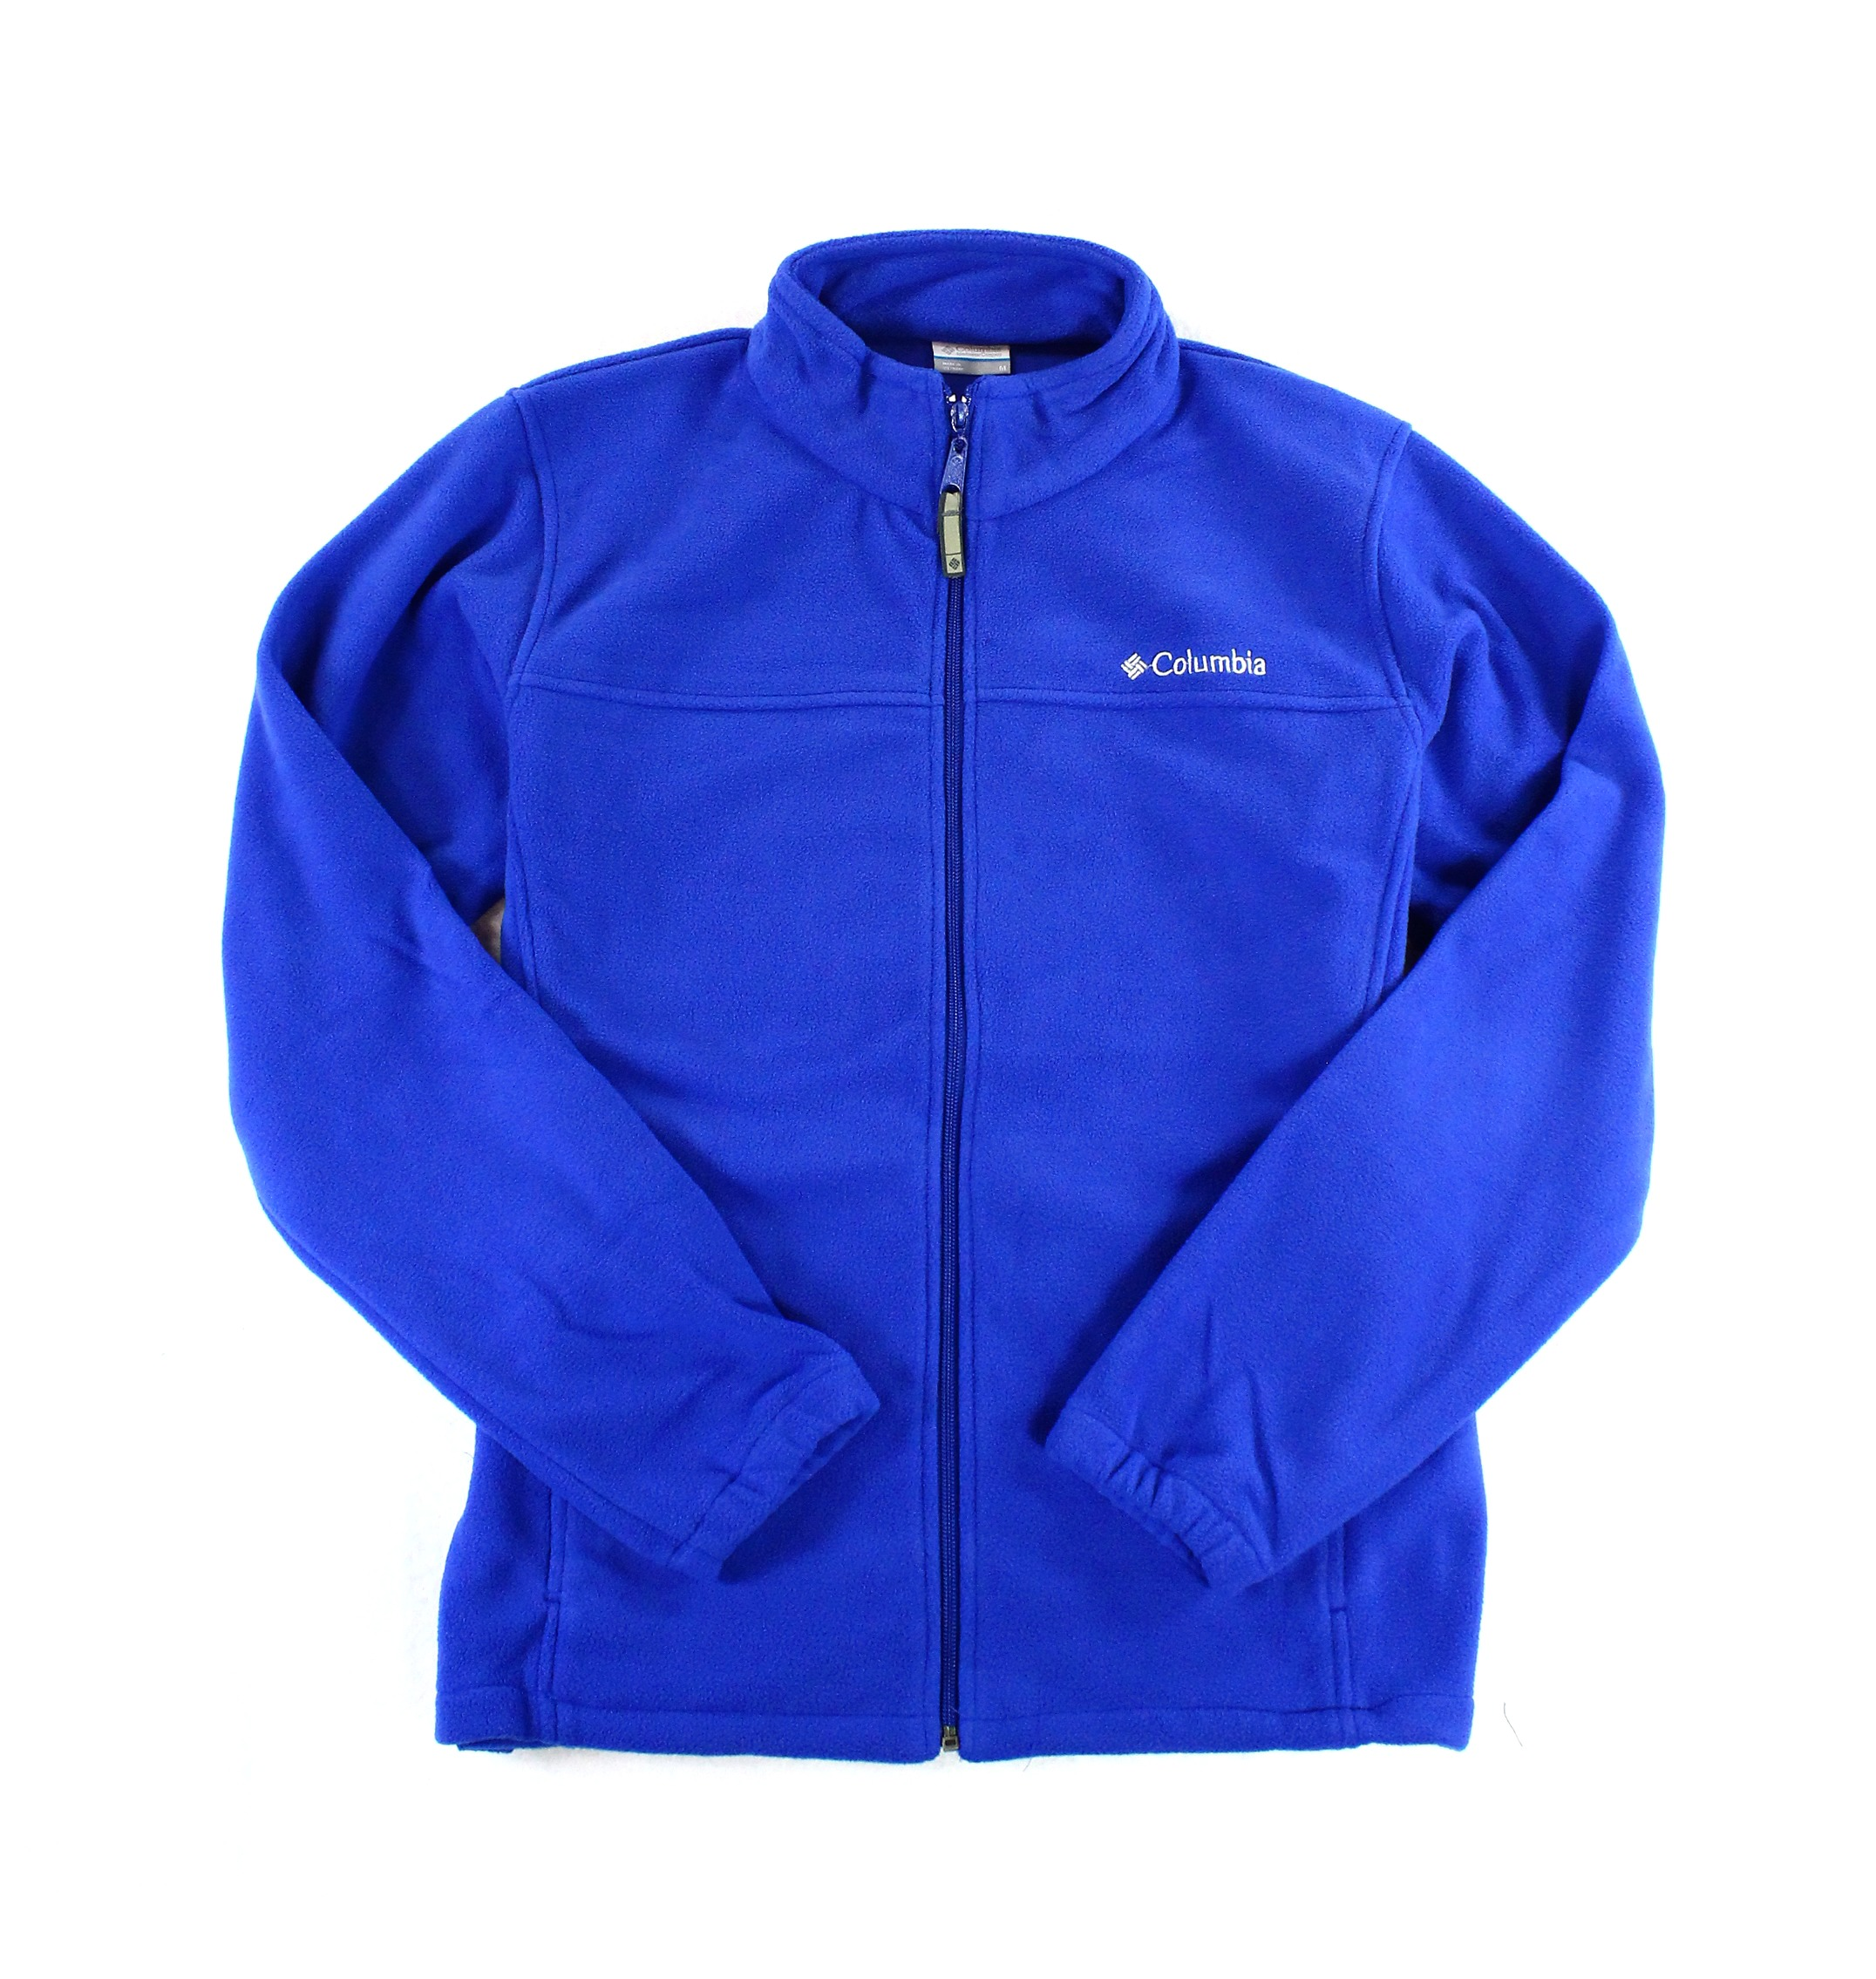 Columbia Zip-Up Winter Mens Jacket